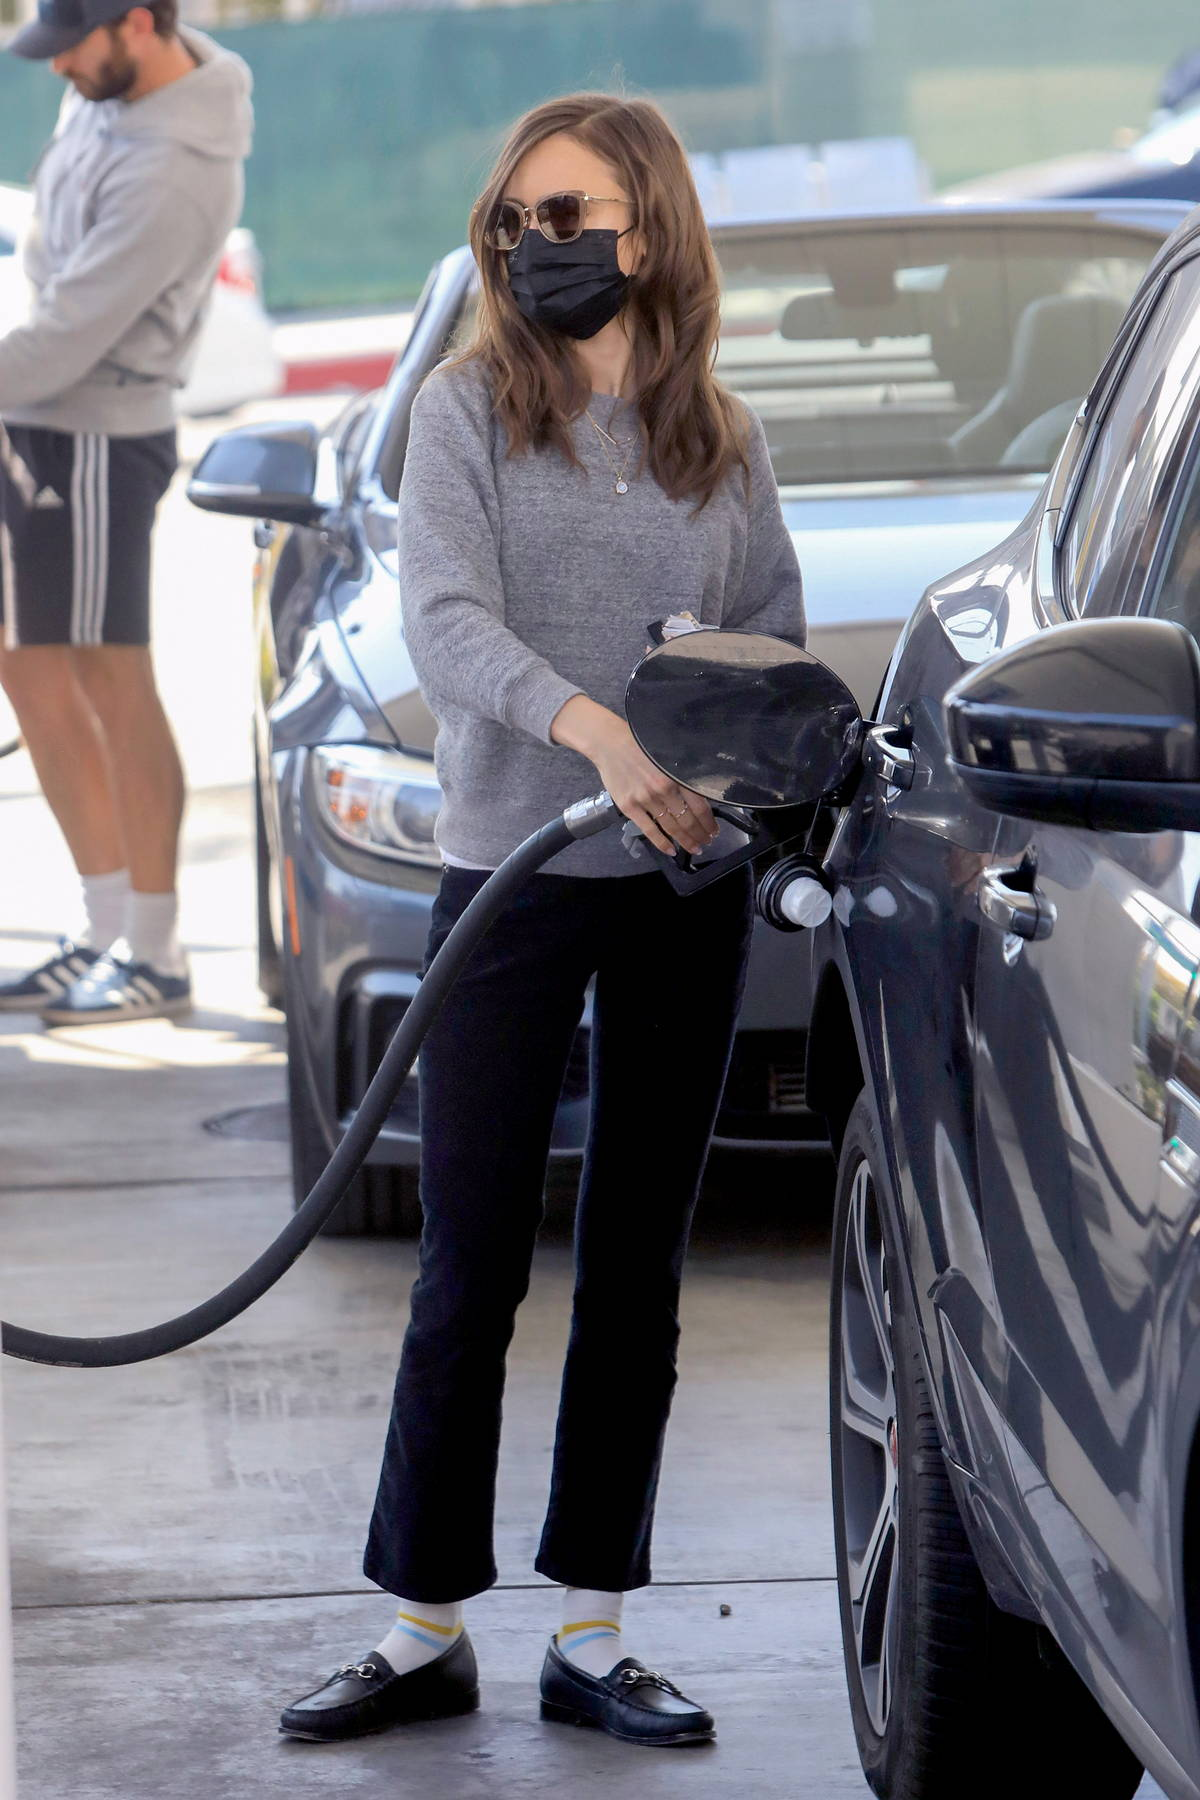 Lily Collins keeps it casual in a grey sweater and black trousers while pumping gas in West Hollywood, California